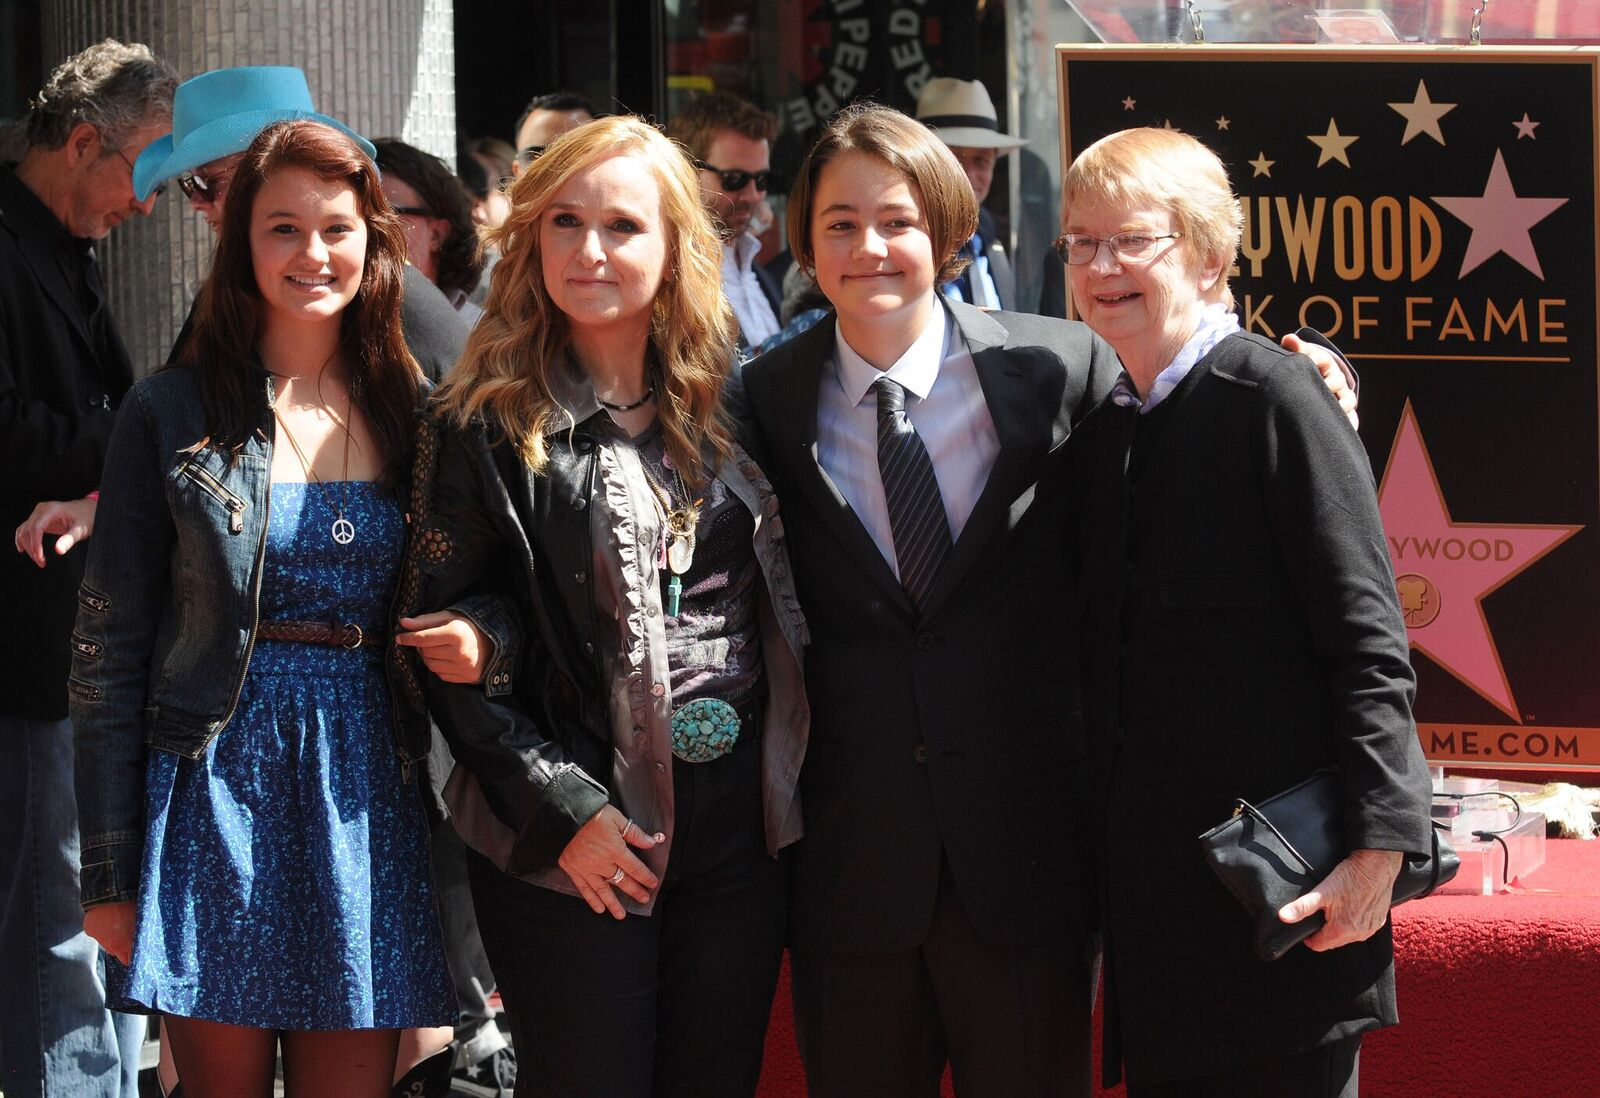 Bailey Cypher, Melissa Etheridge, Beckett Cypher, and Elizabeth Williamson at Etheridge's Hollywood Walk of Fame Induction Ceremony on September 27, 2011 | Photo: Getty Images